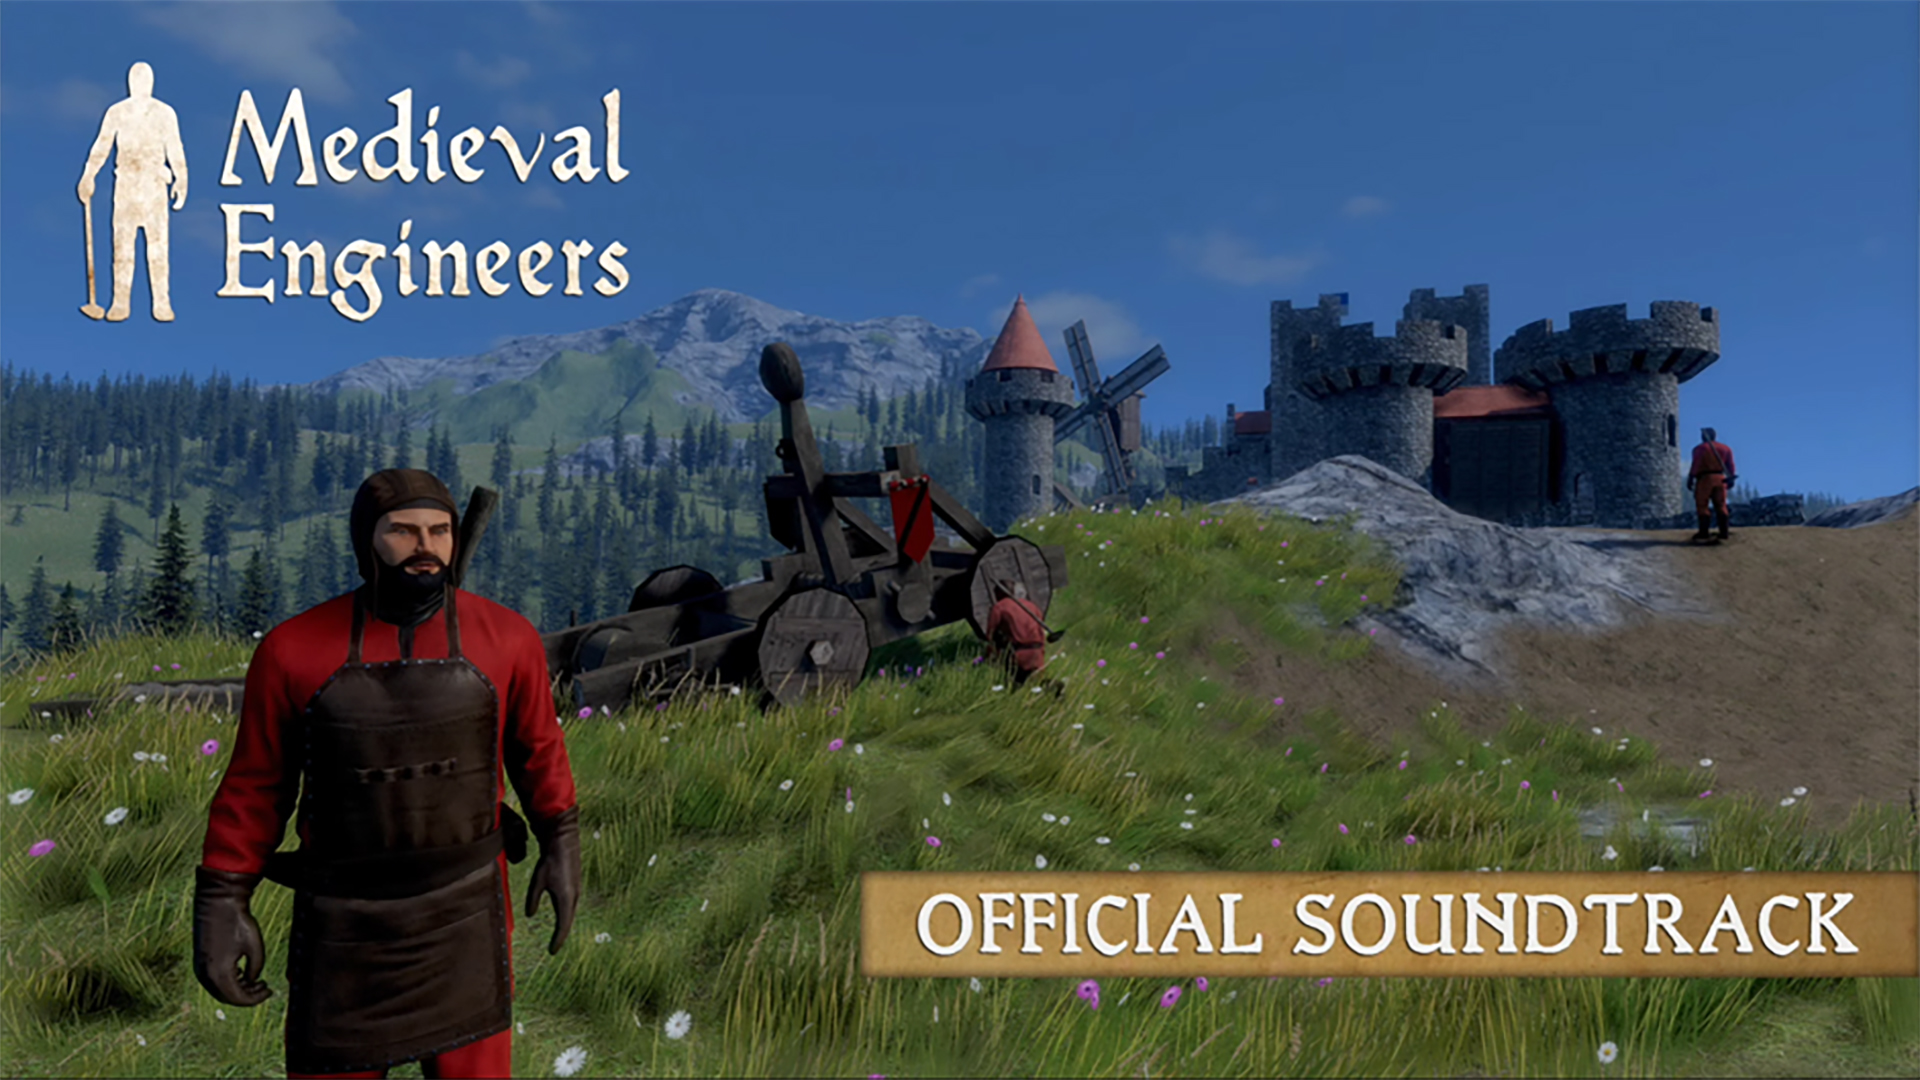 Medieval Engineers - Deluxe screenshot